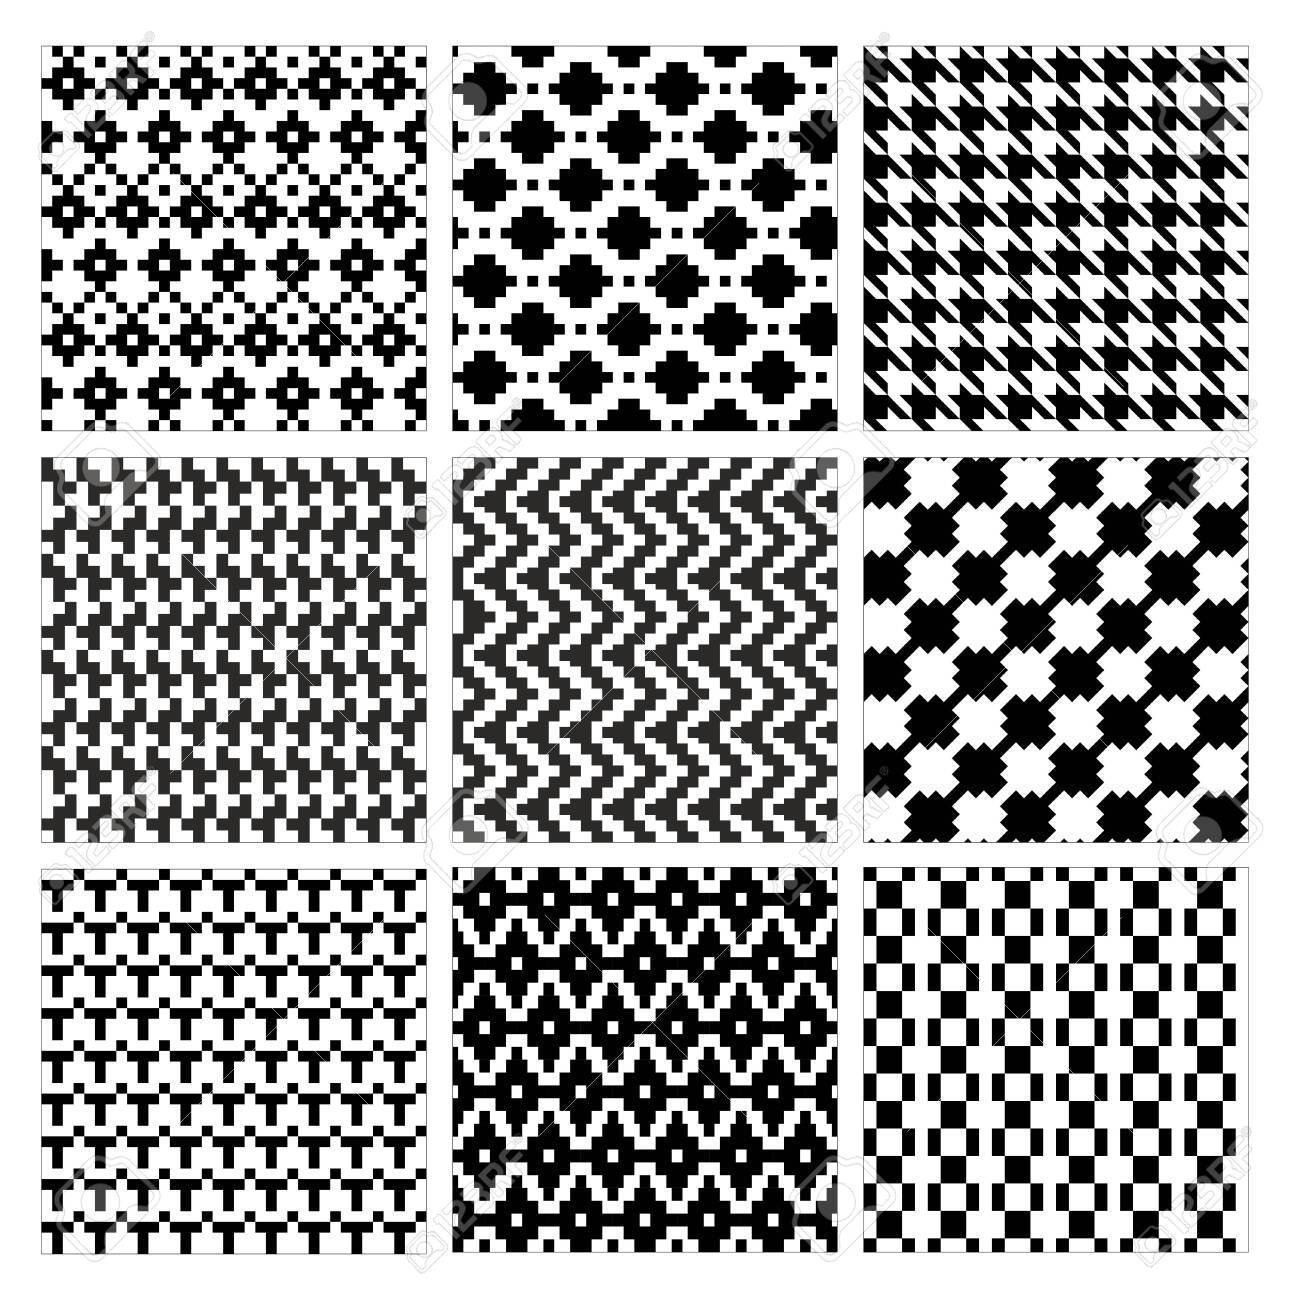 Seamless geometric pattern vector illustration set. Collection of modern stylish ornate abstract black and white texture geometry. Repeating geometric ornament tiles from striped, diagonal elements - 153327131